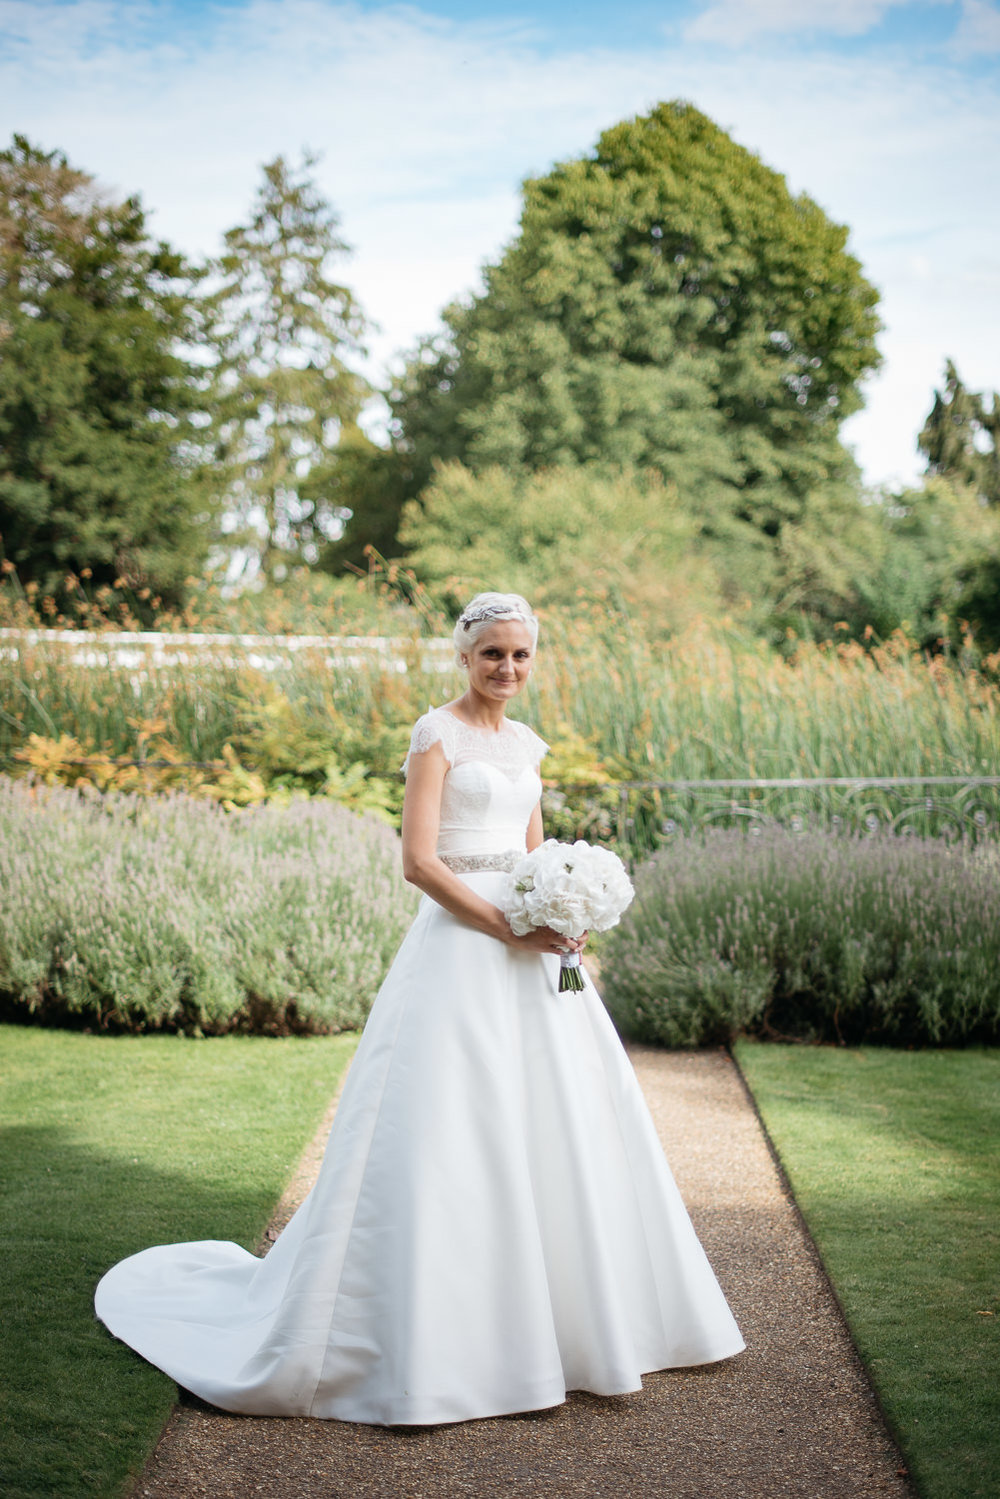 Bridal portrait at Burghley House